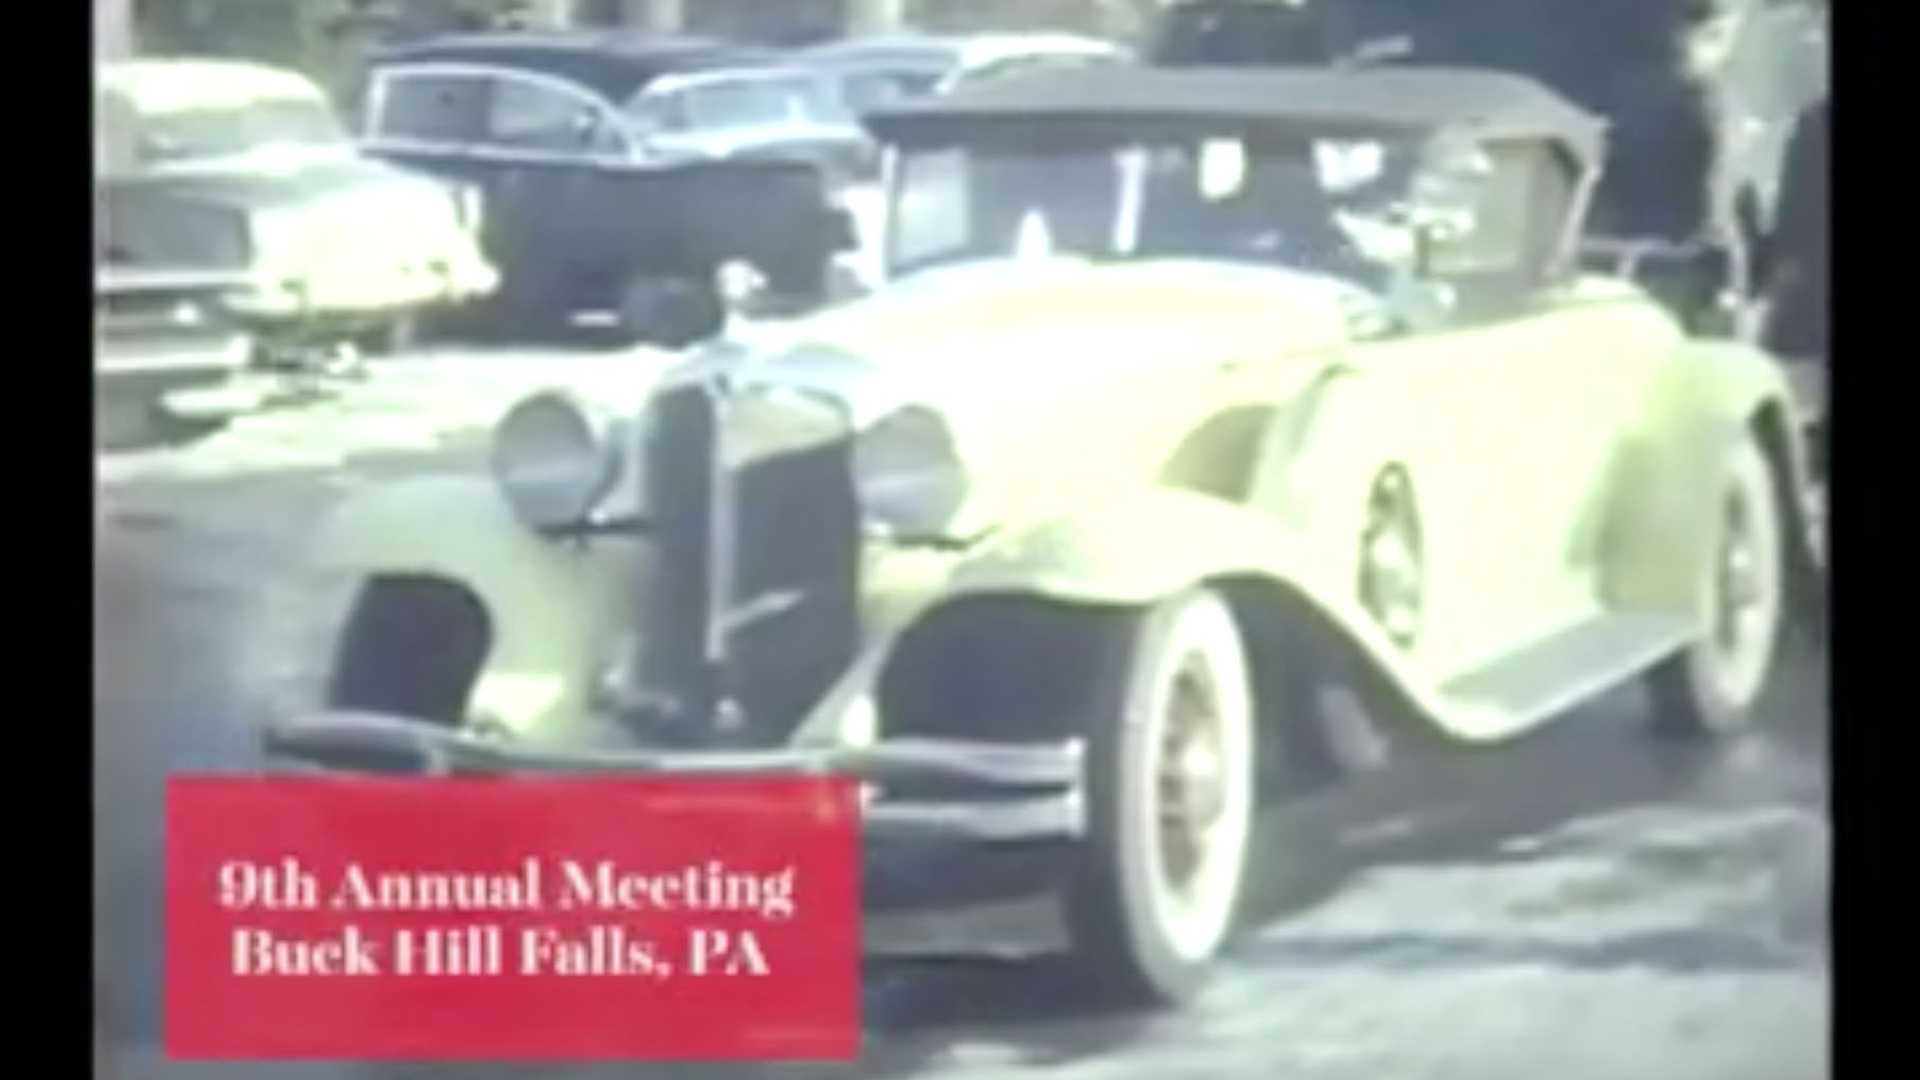 "[""Take A Video Tour Of The CCCA's 9th-Annual Meeting At Buck Hill Falls""]"